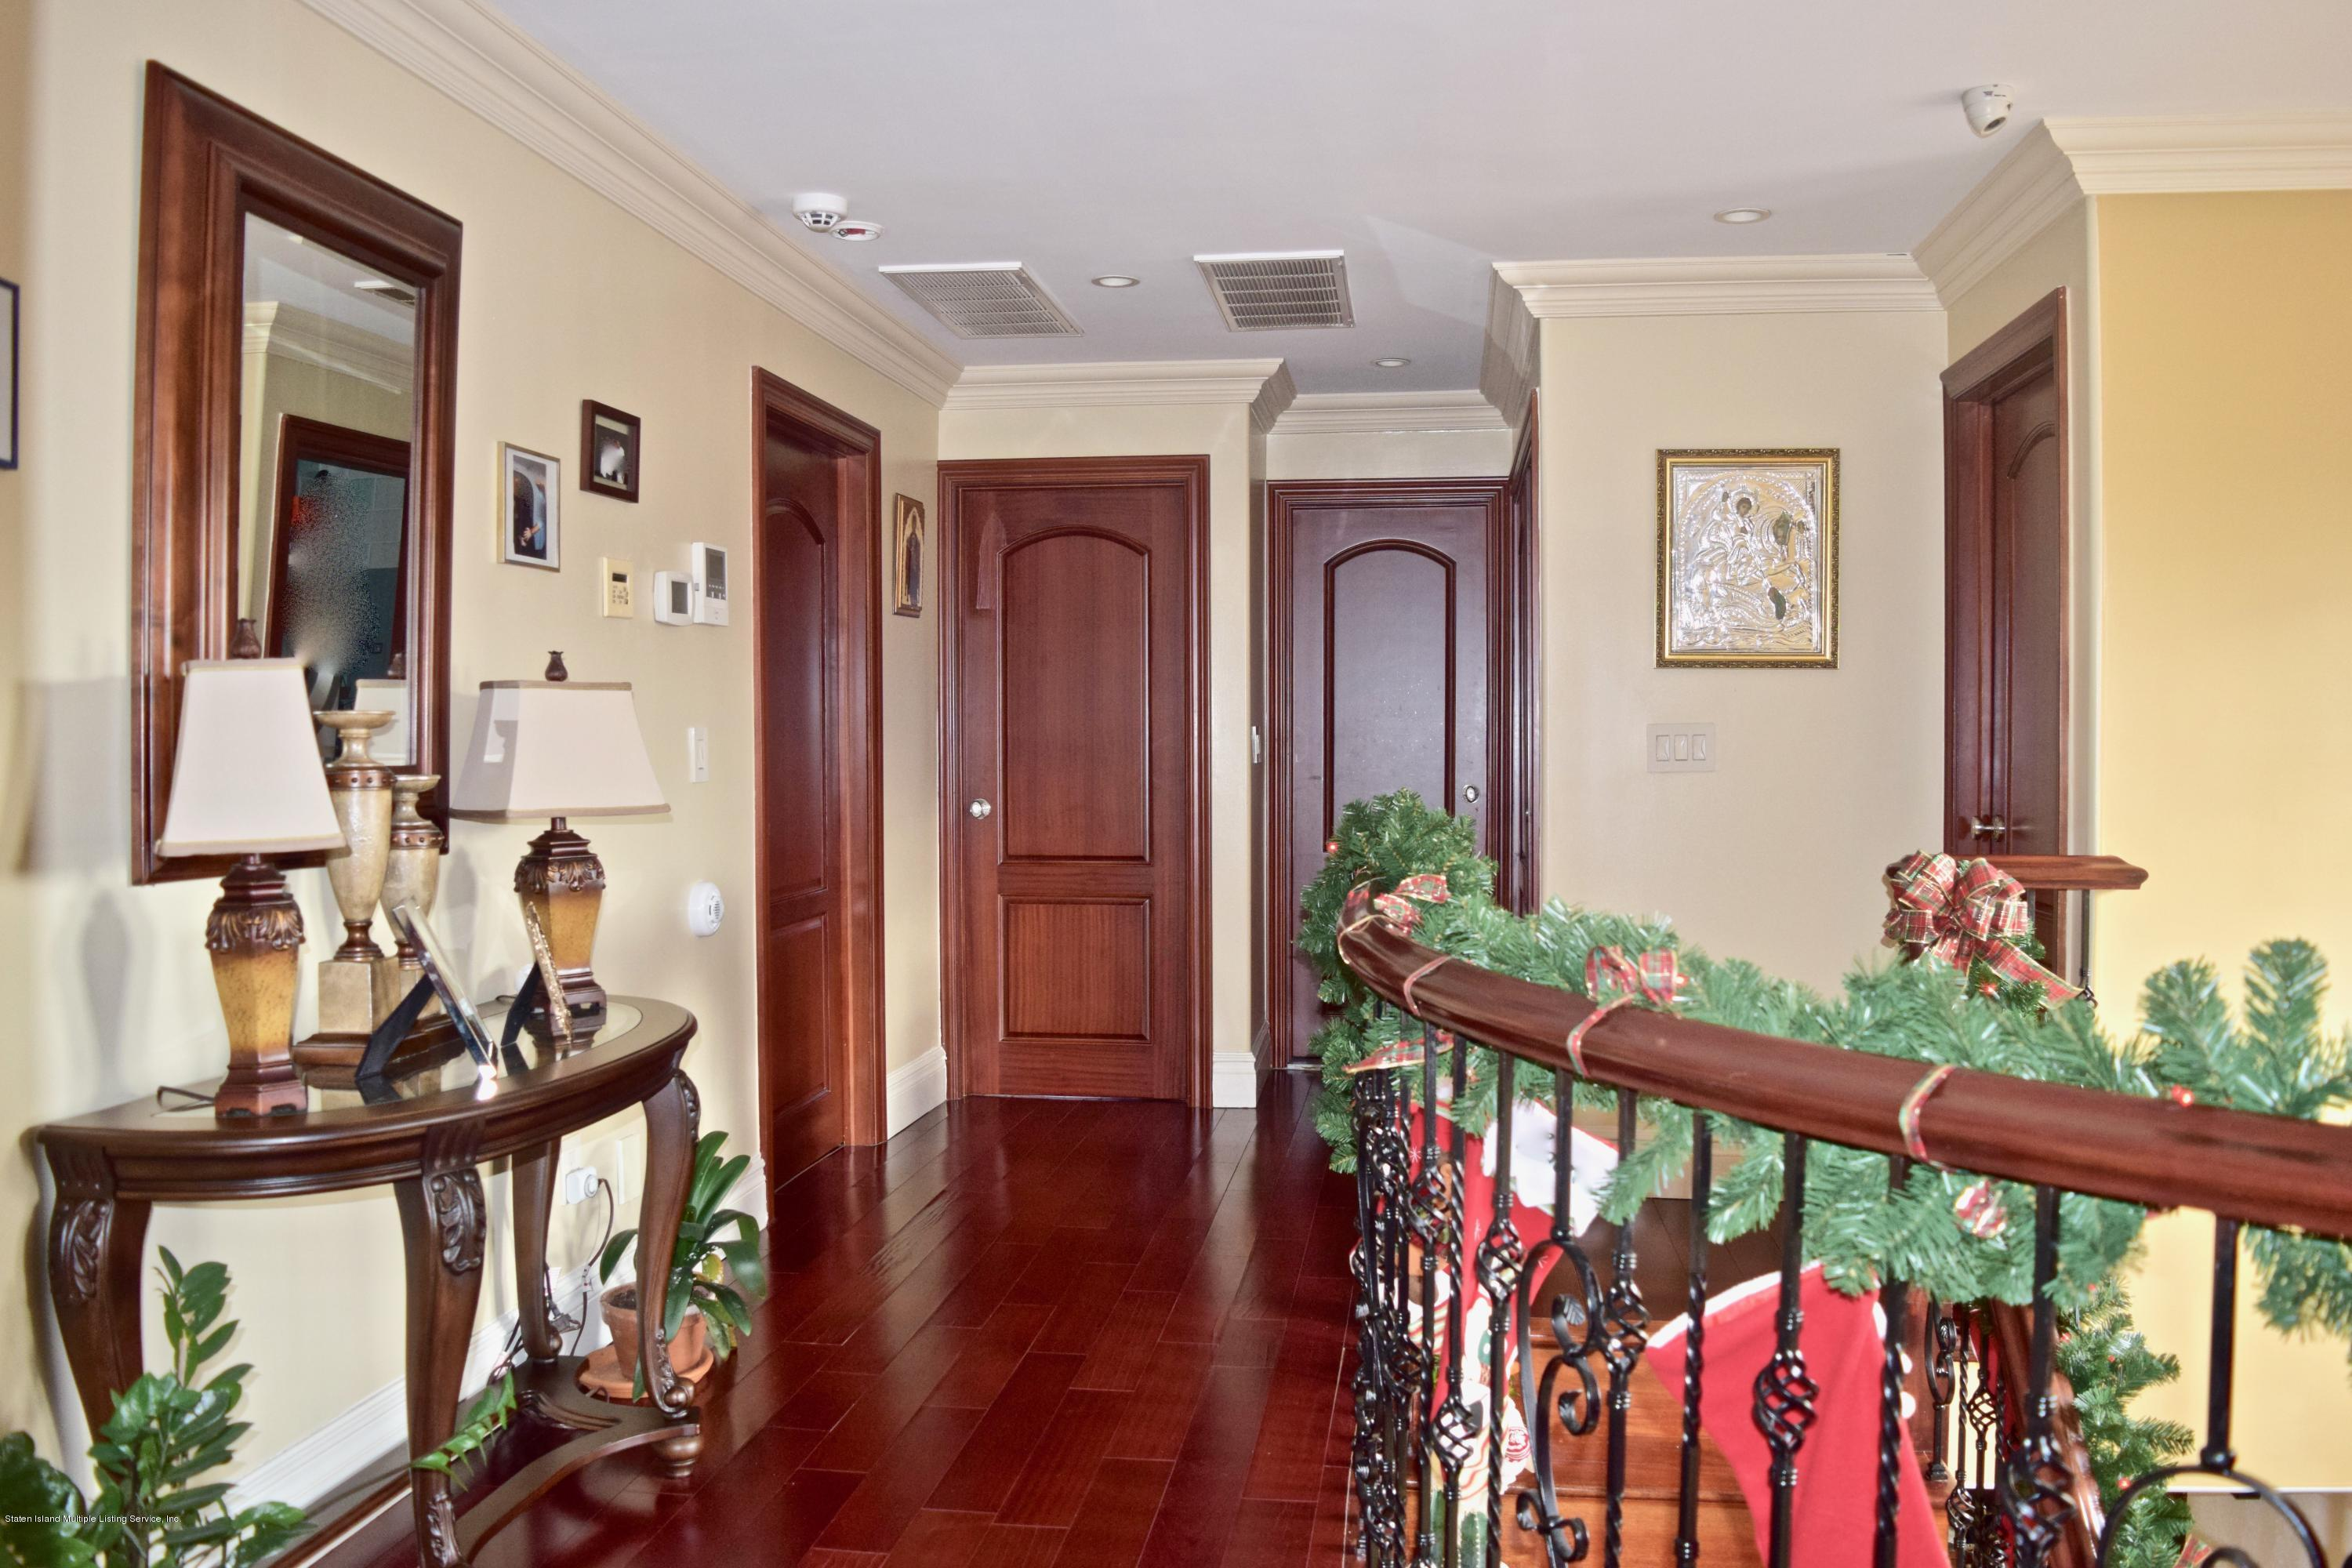 Single Family - Detached 107 Northern Boulevard  Staten Island, NY 10301, MLS-1124986-11